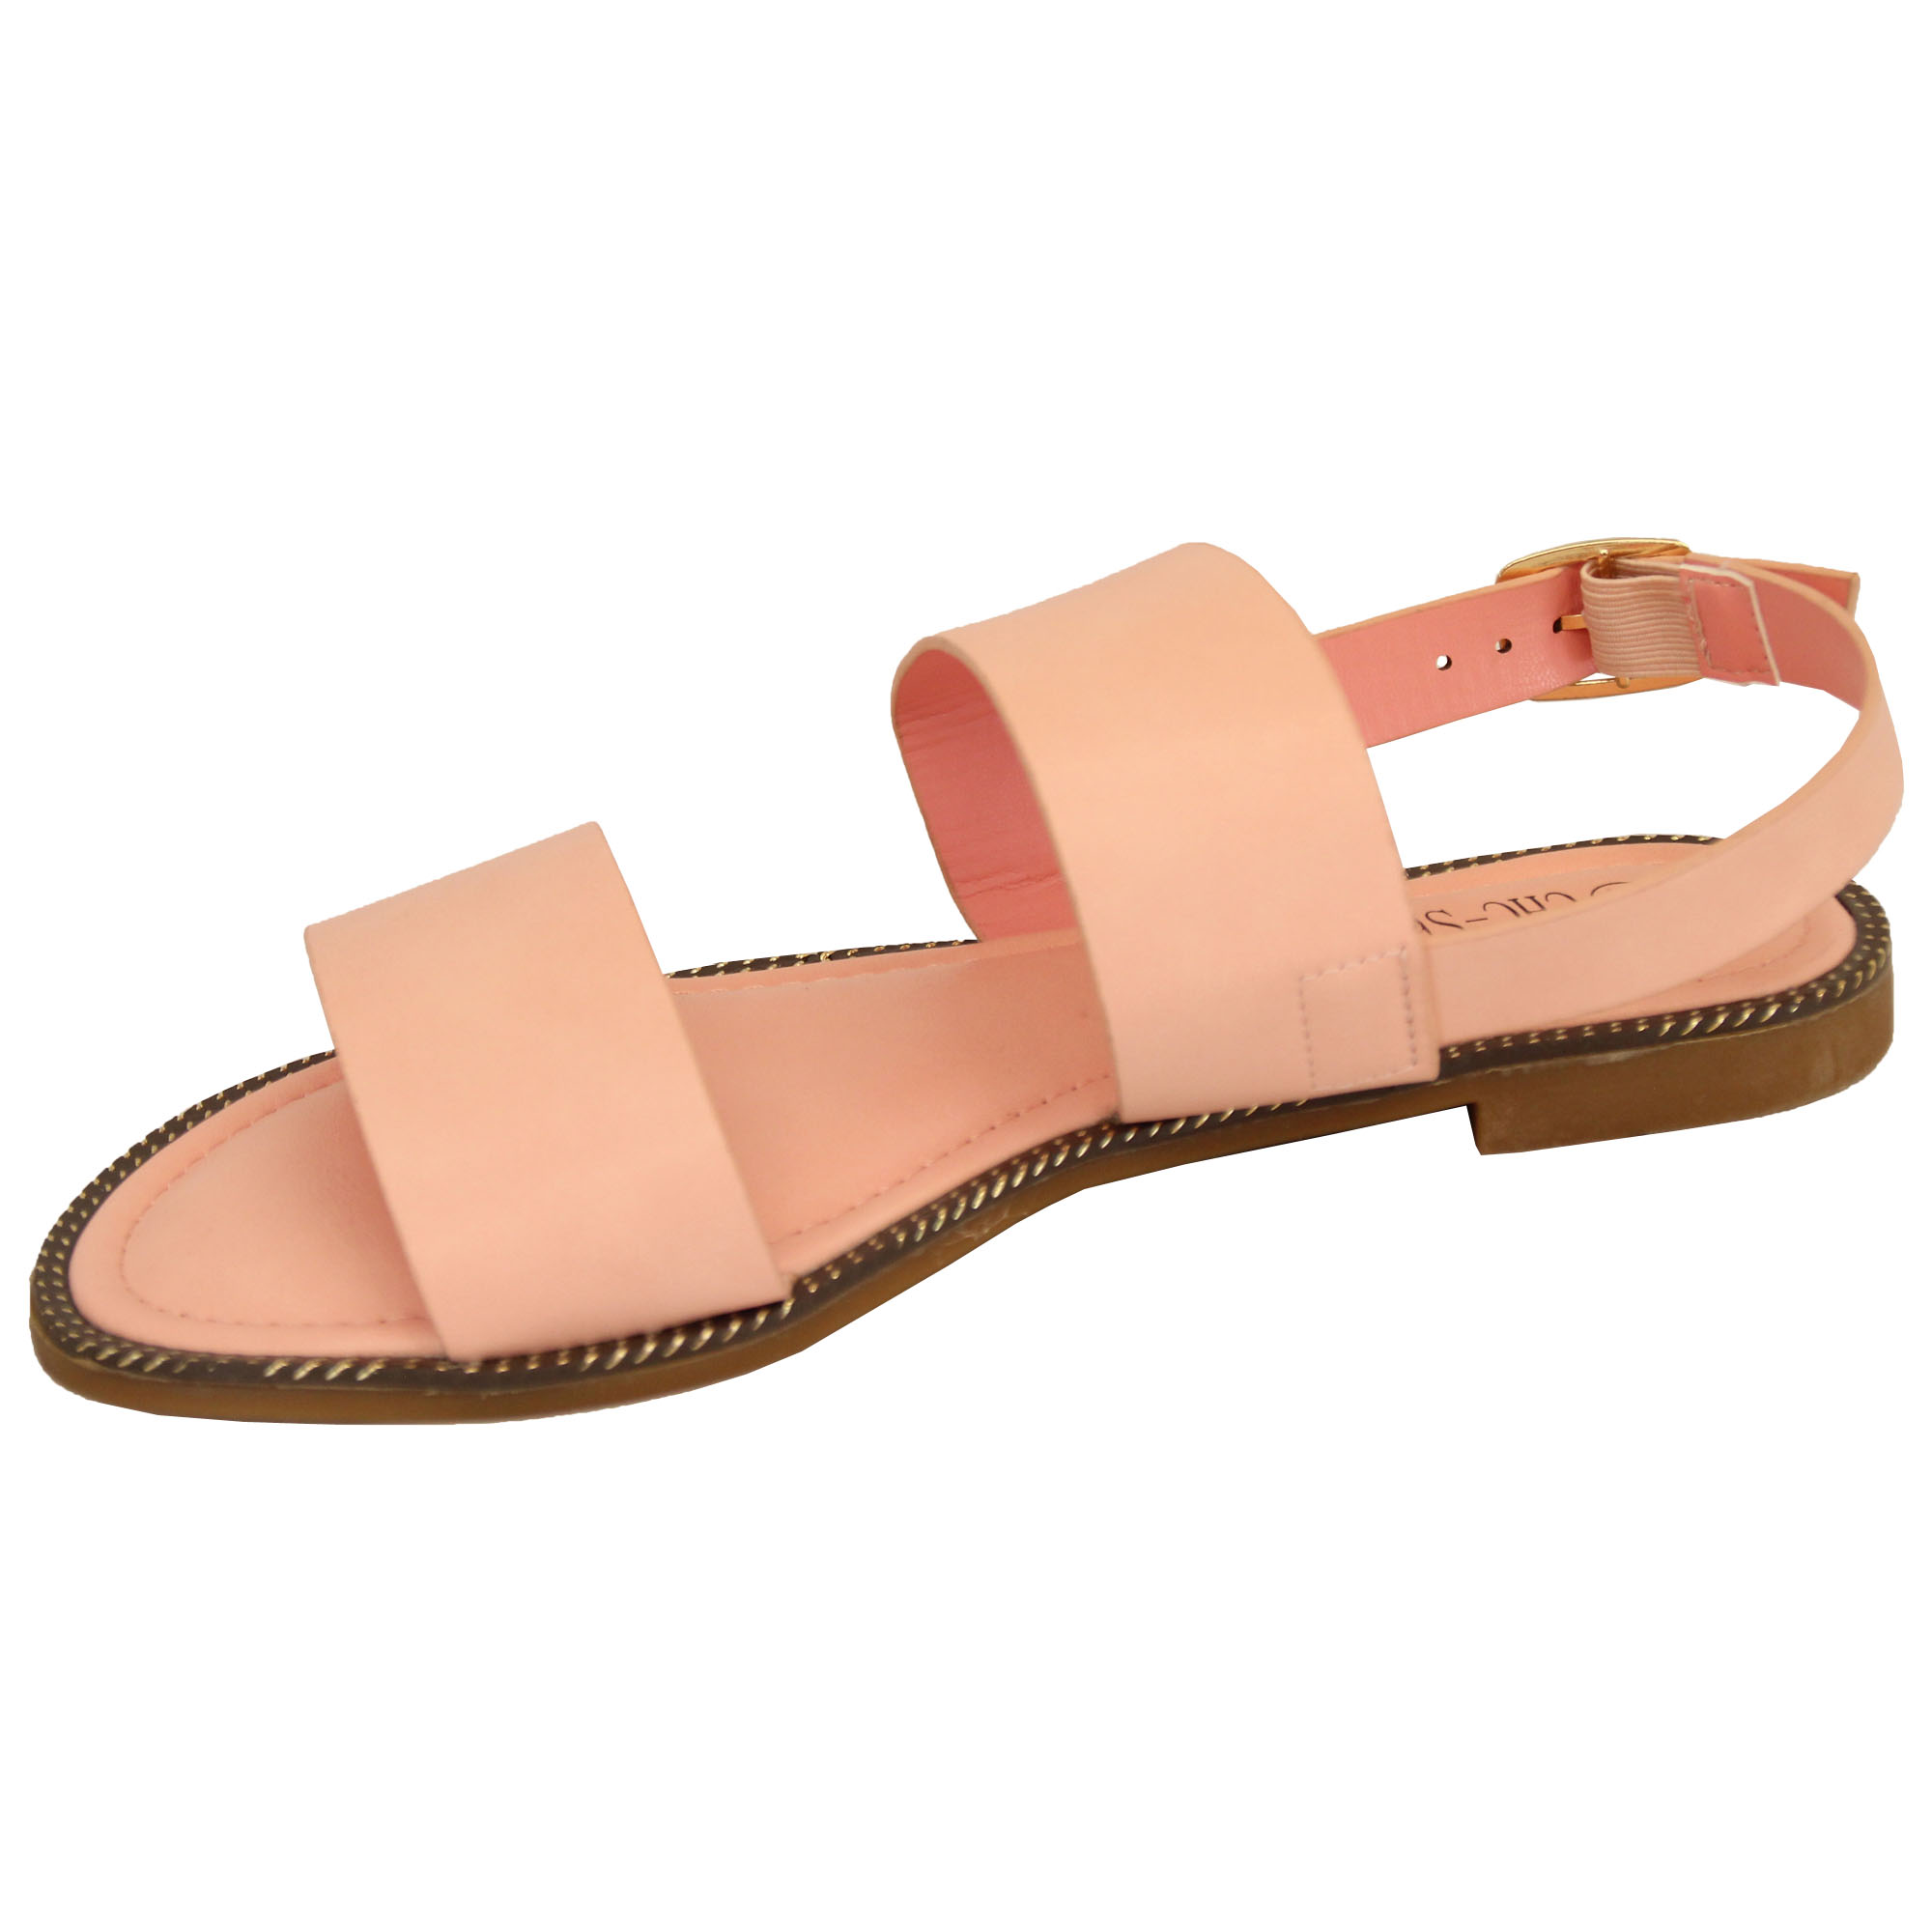 Ladies-Flat-Sandals-Slip-On-Womens-Open-Toe-Shoes-Buckle-Fashion-Wedding-Summer thumbnail 10